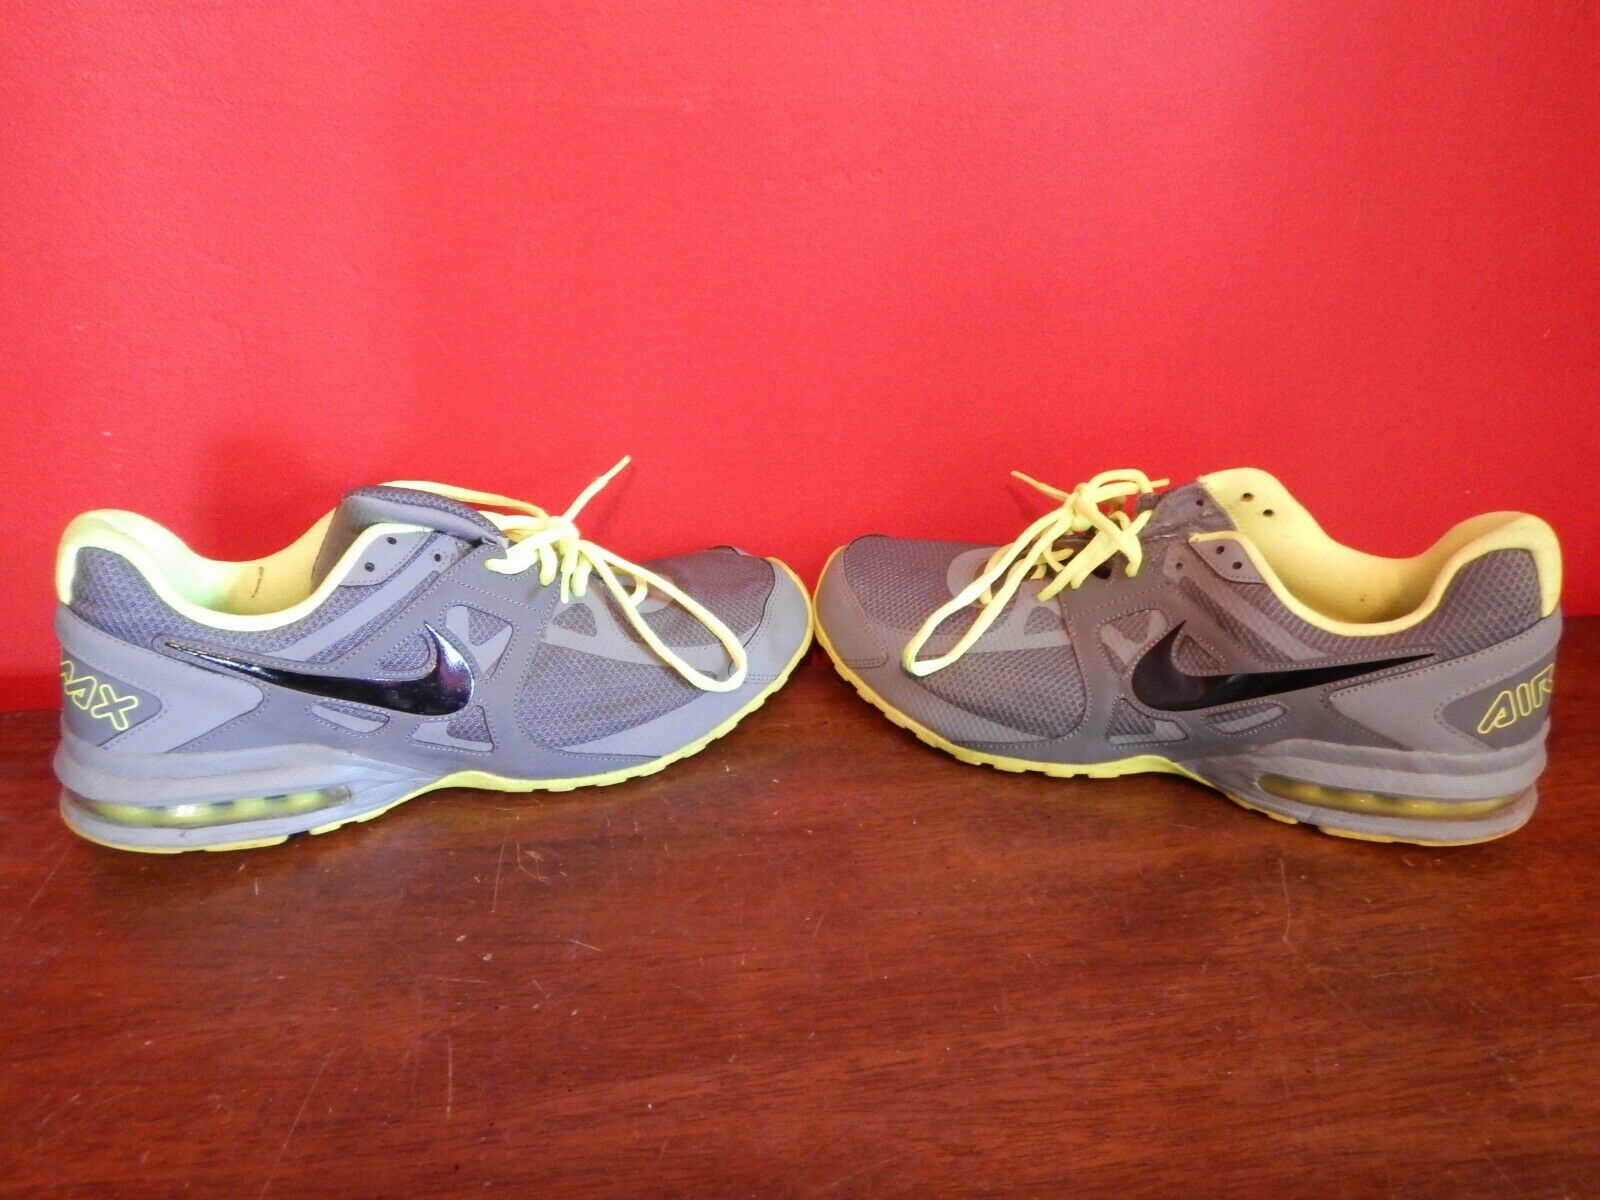 NIKE AIR MAX LIMITLESS GREY ATHLETIC MEN'S SHOES SIZE 13  Model 525759-002